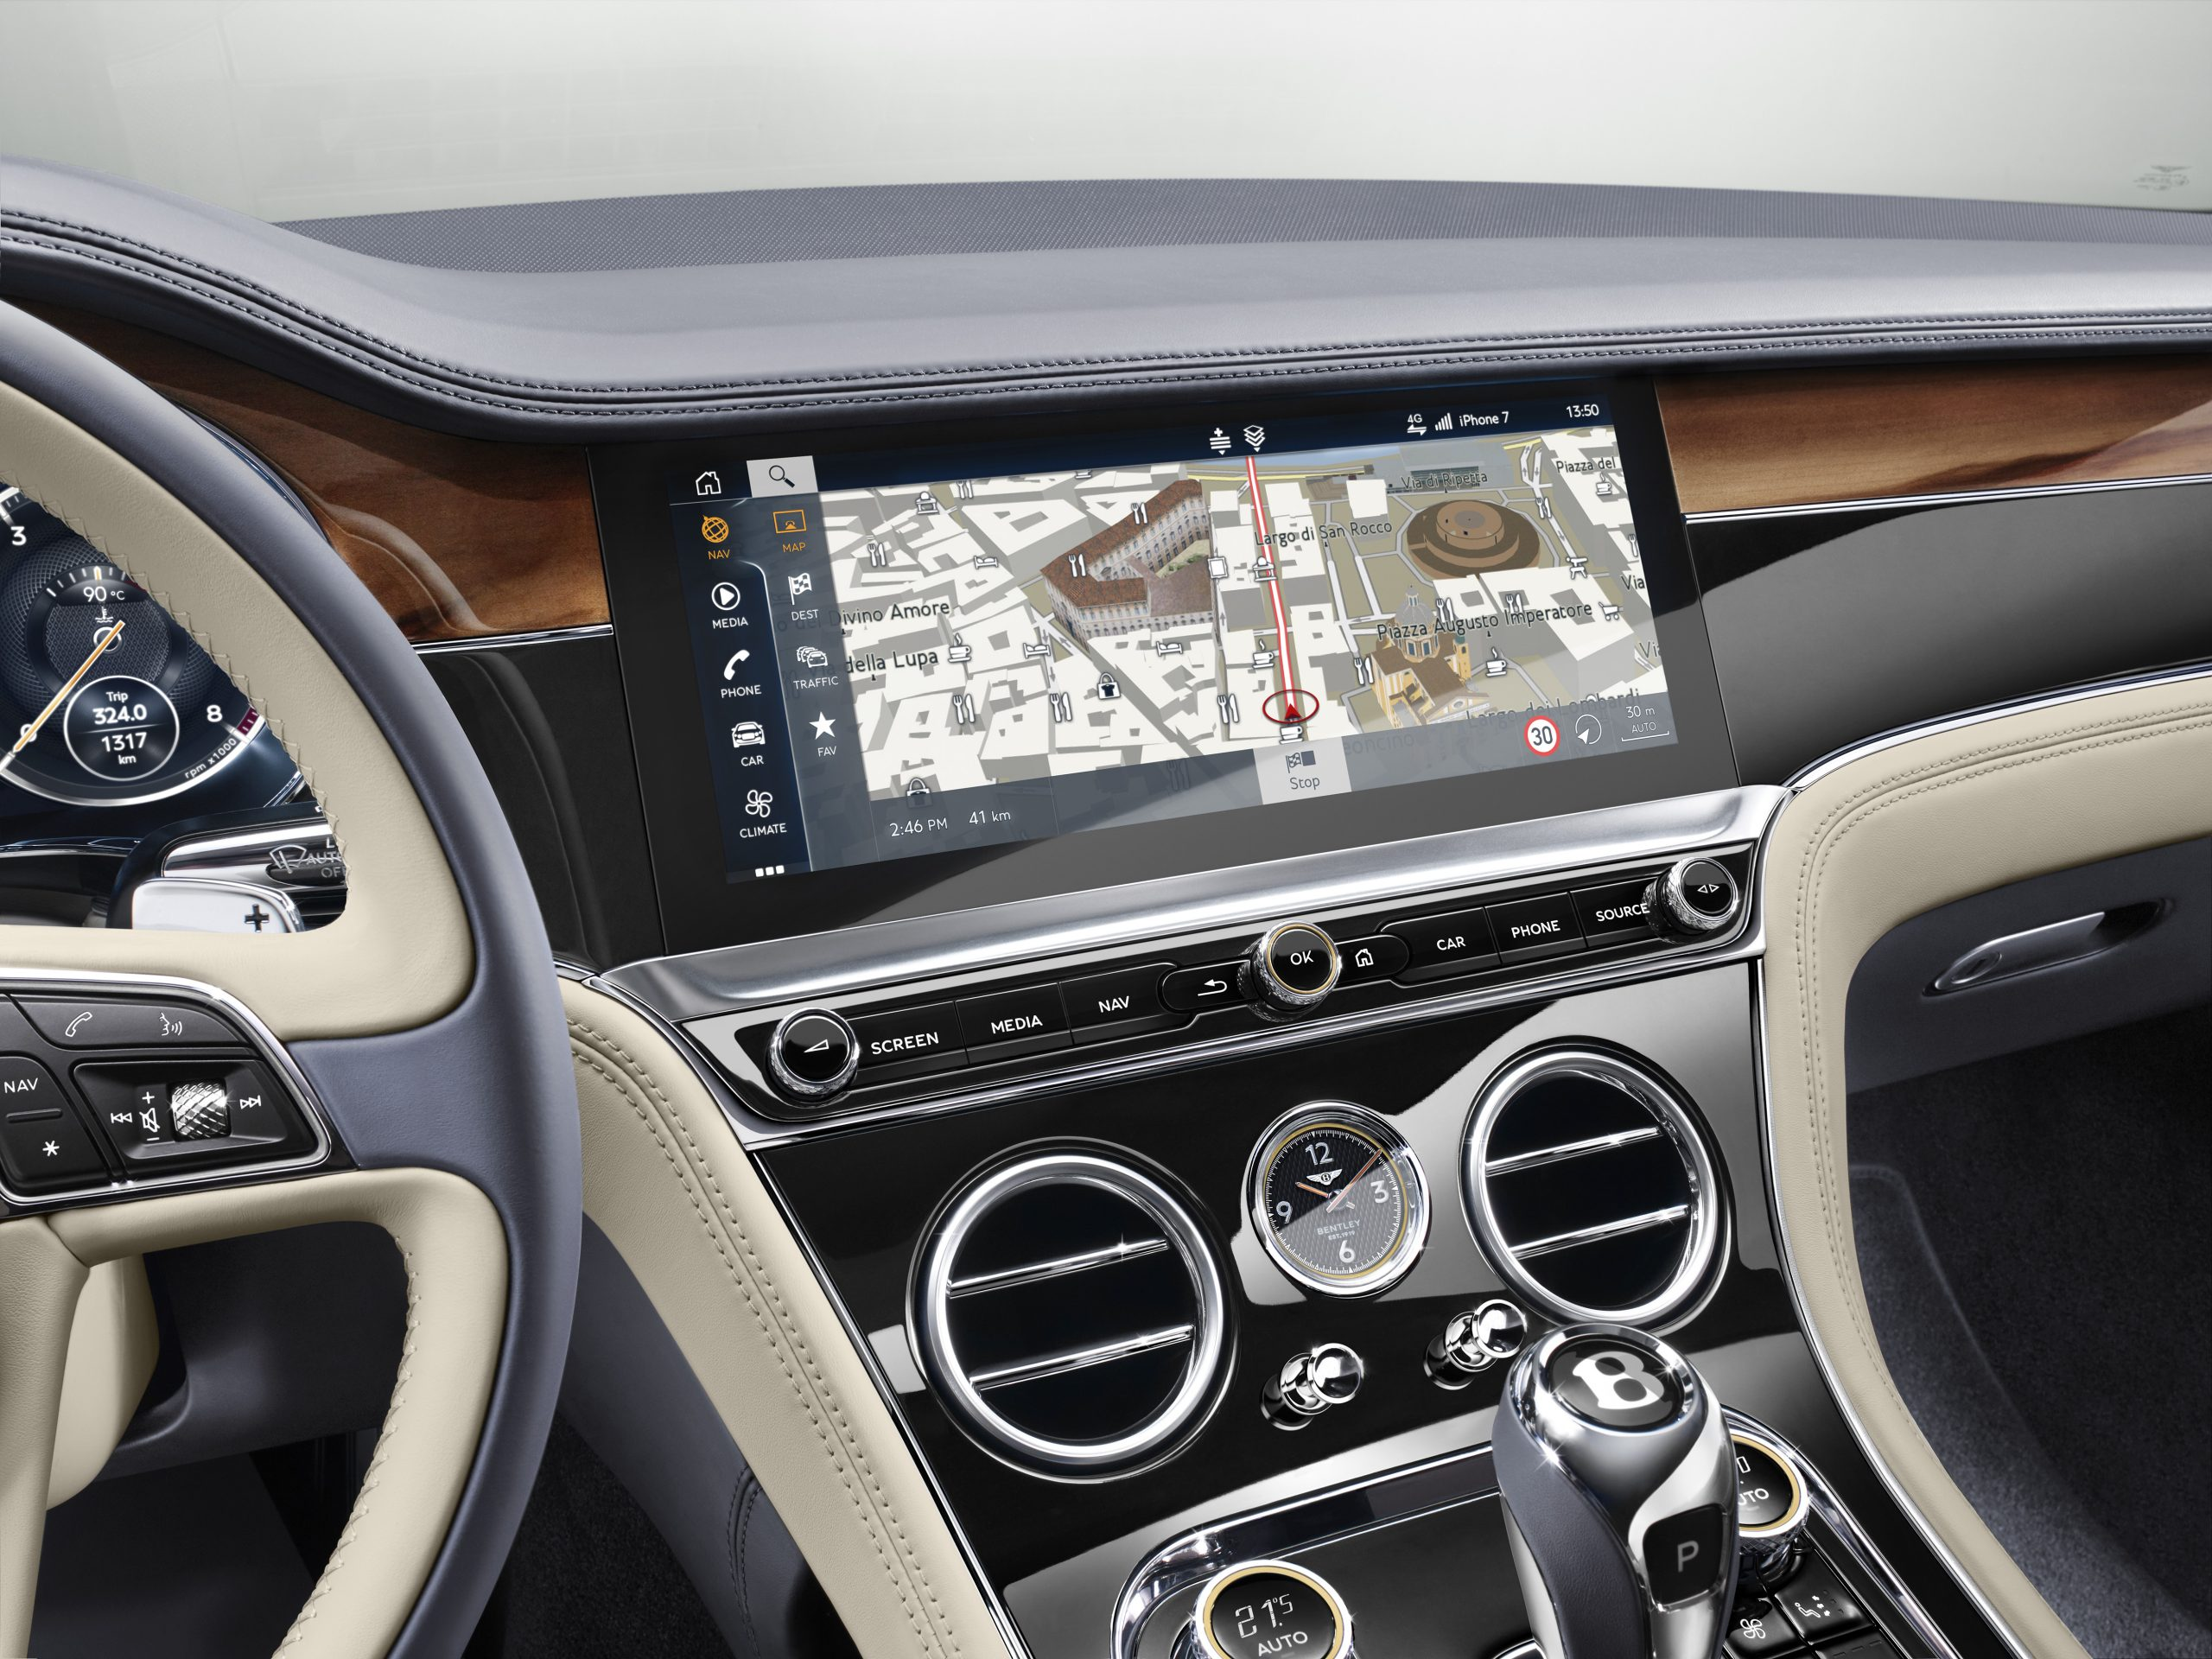 Bentley Continental GT infotainment system